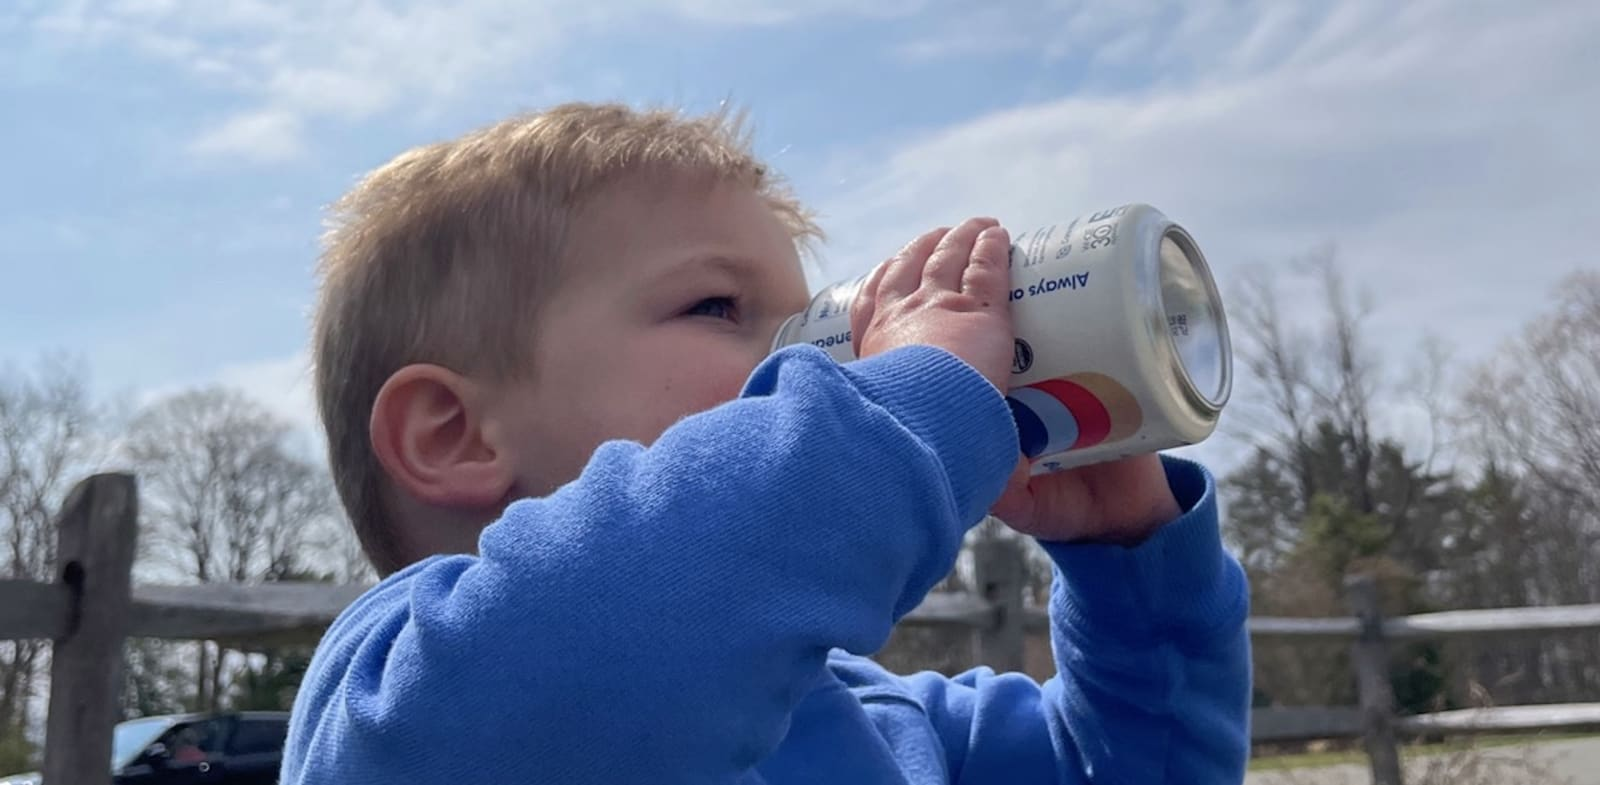 How Sugary Drinks Impact the Health of Our Kids